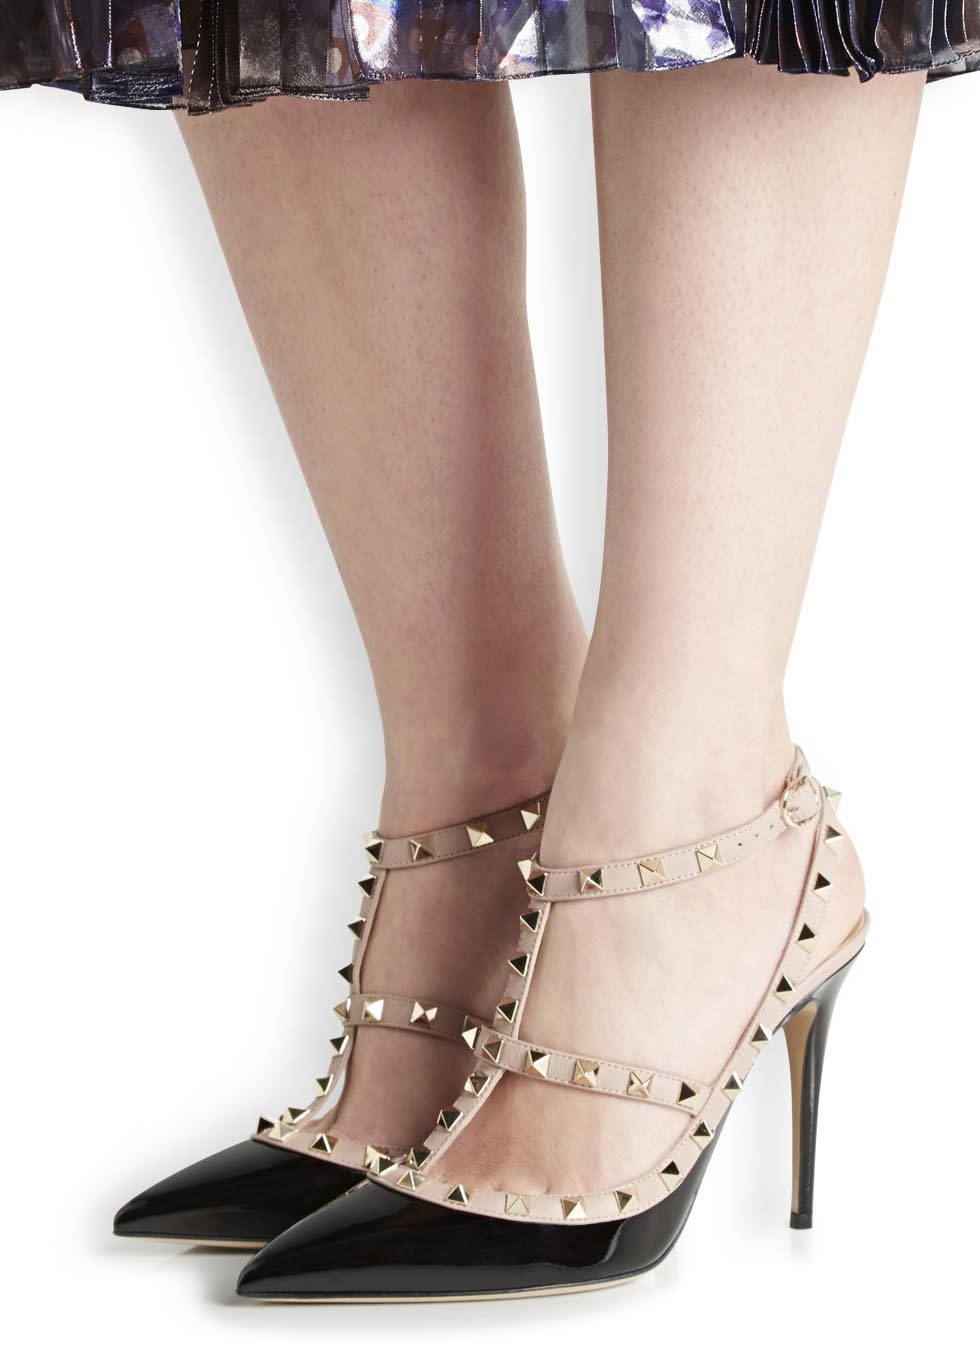 b8bcdcdee58 Valentino Rockstud 100 Black Patent Leather Pumps in Black - Lyst